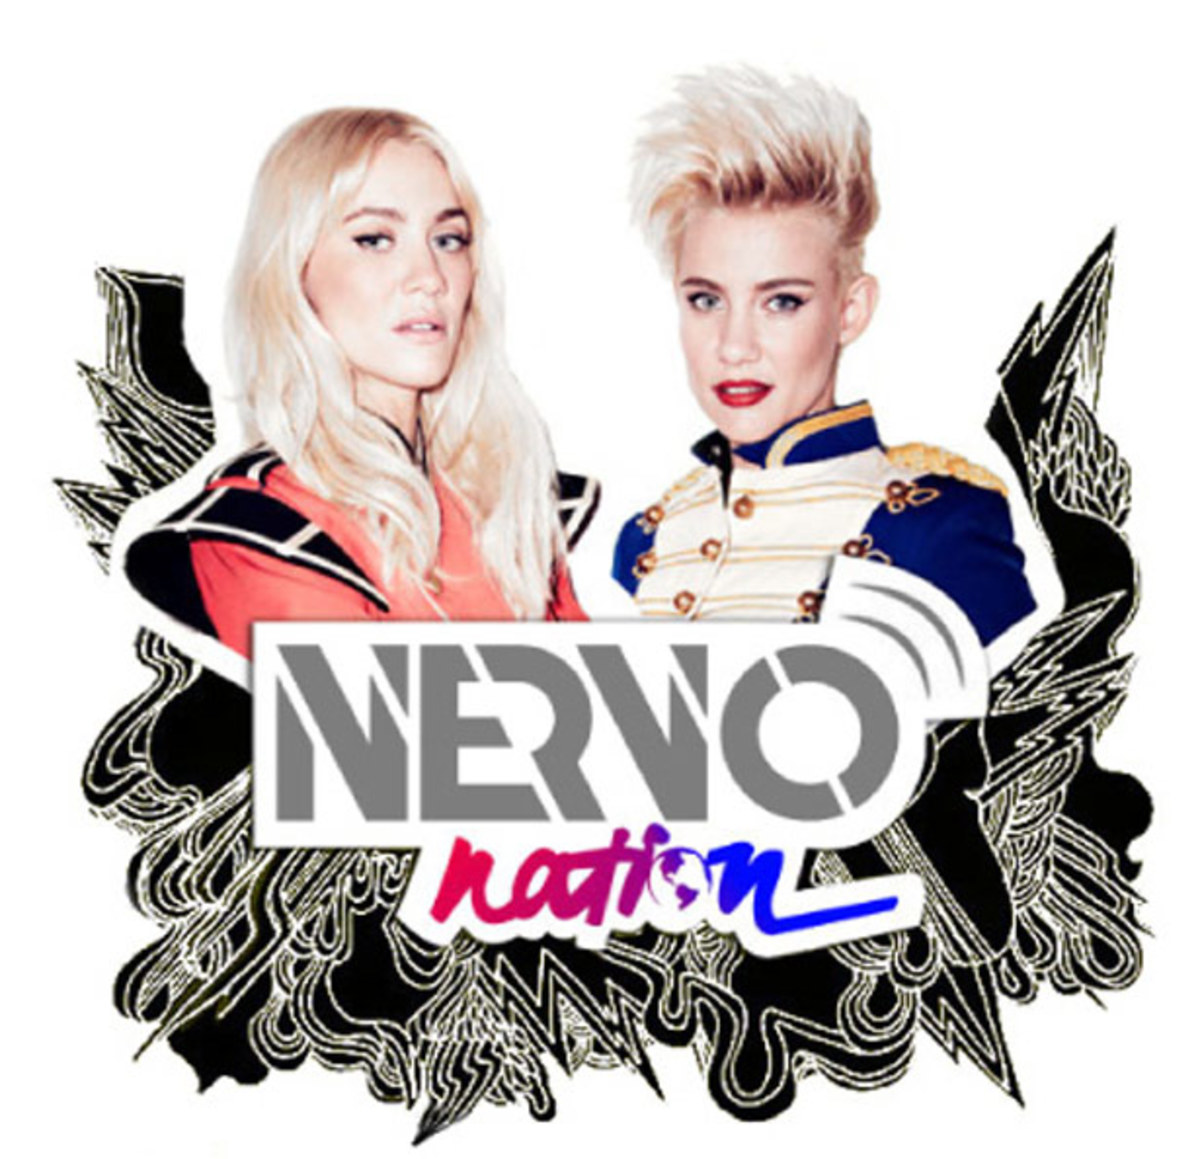 EDM Download: NERVO NATION Mix Featuring Tracks By Dubfire, Duck Sauce & More